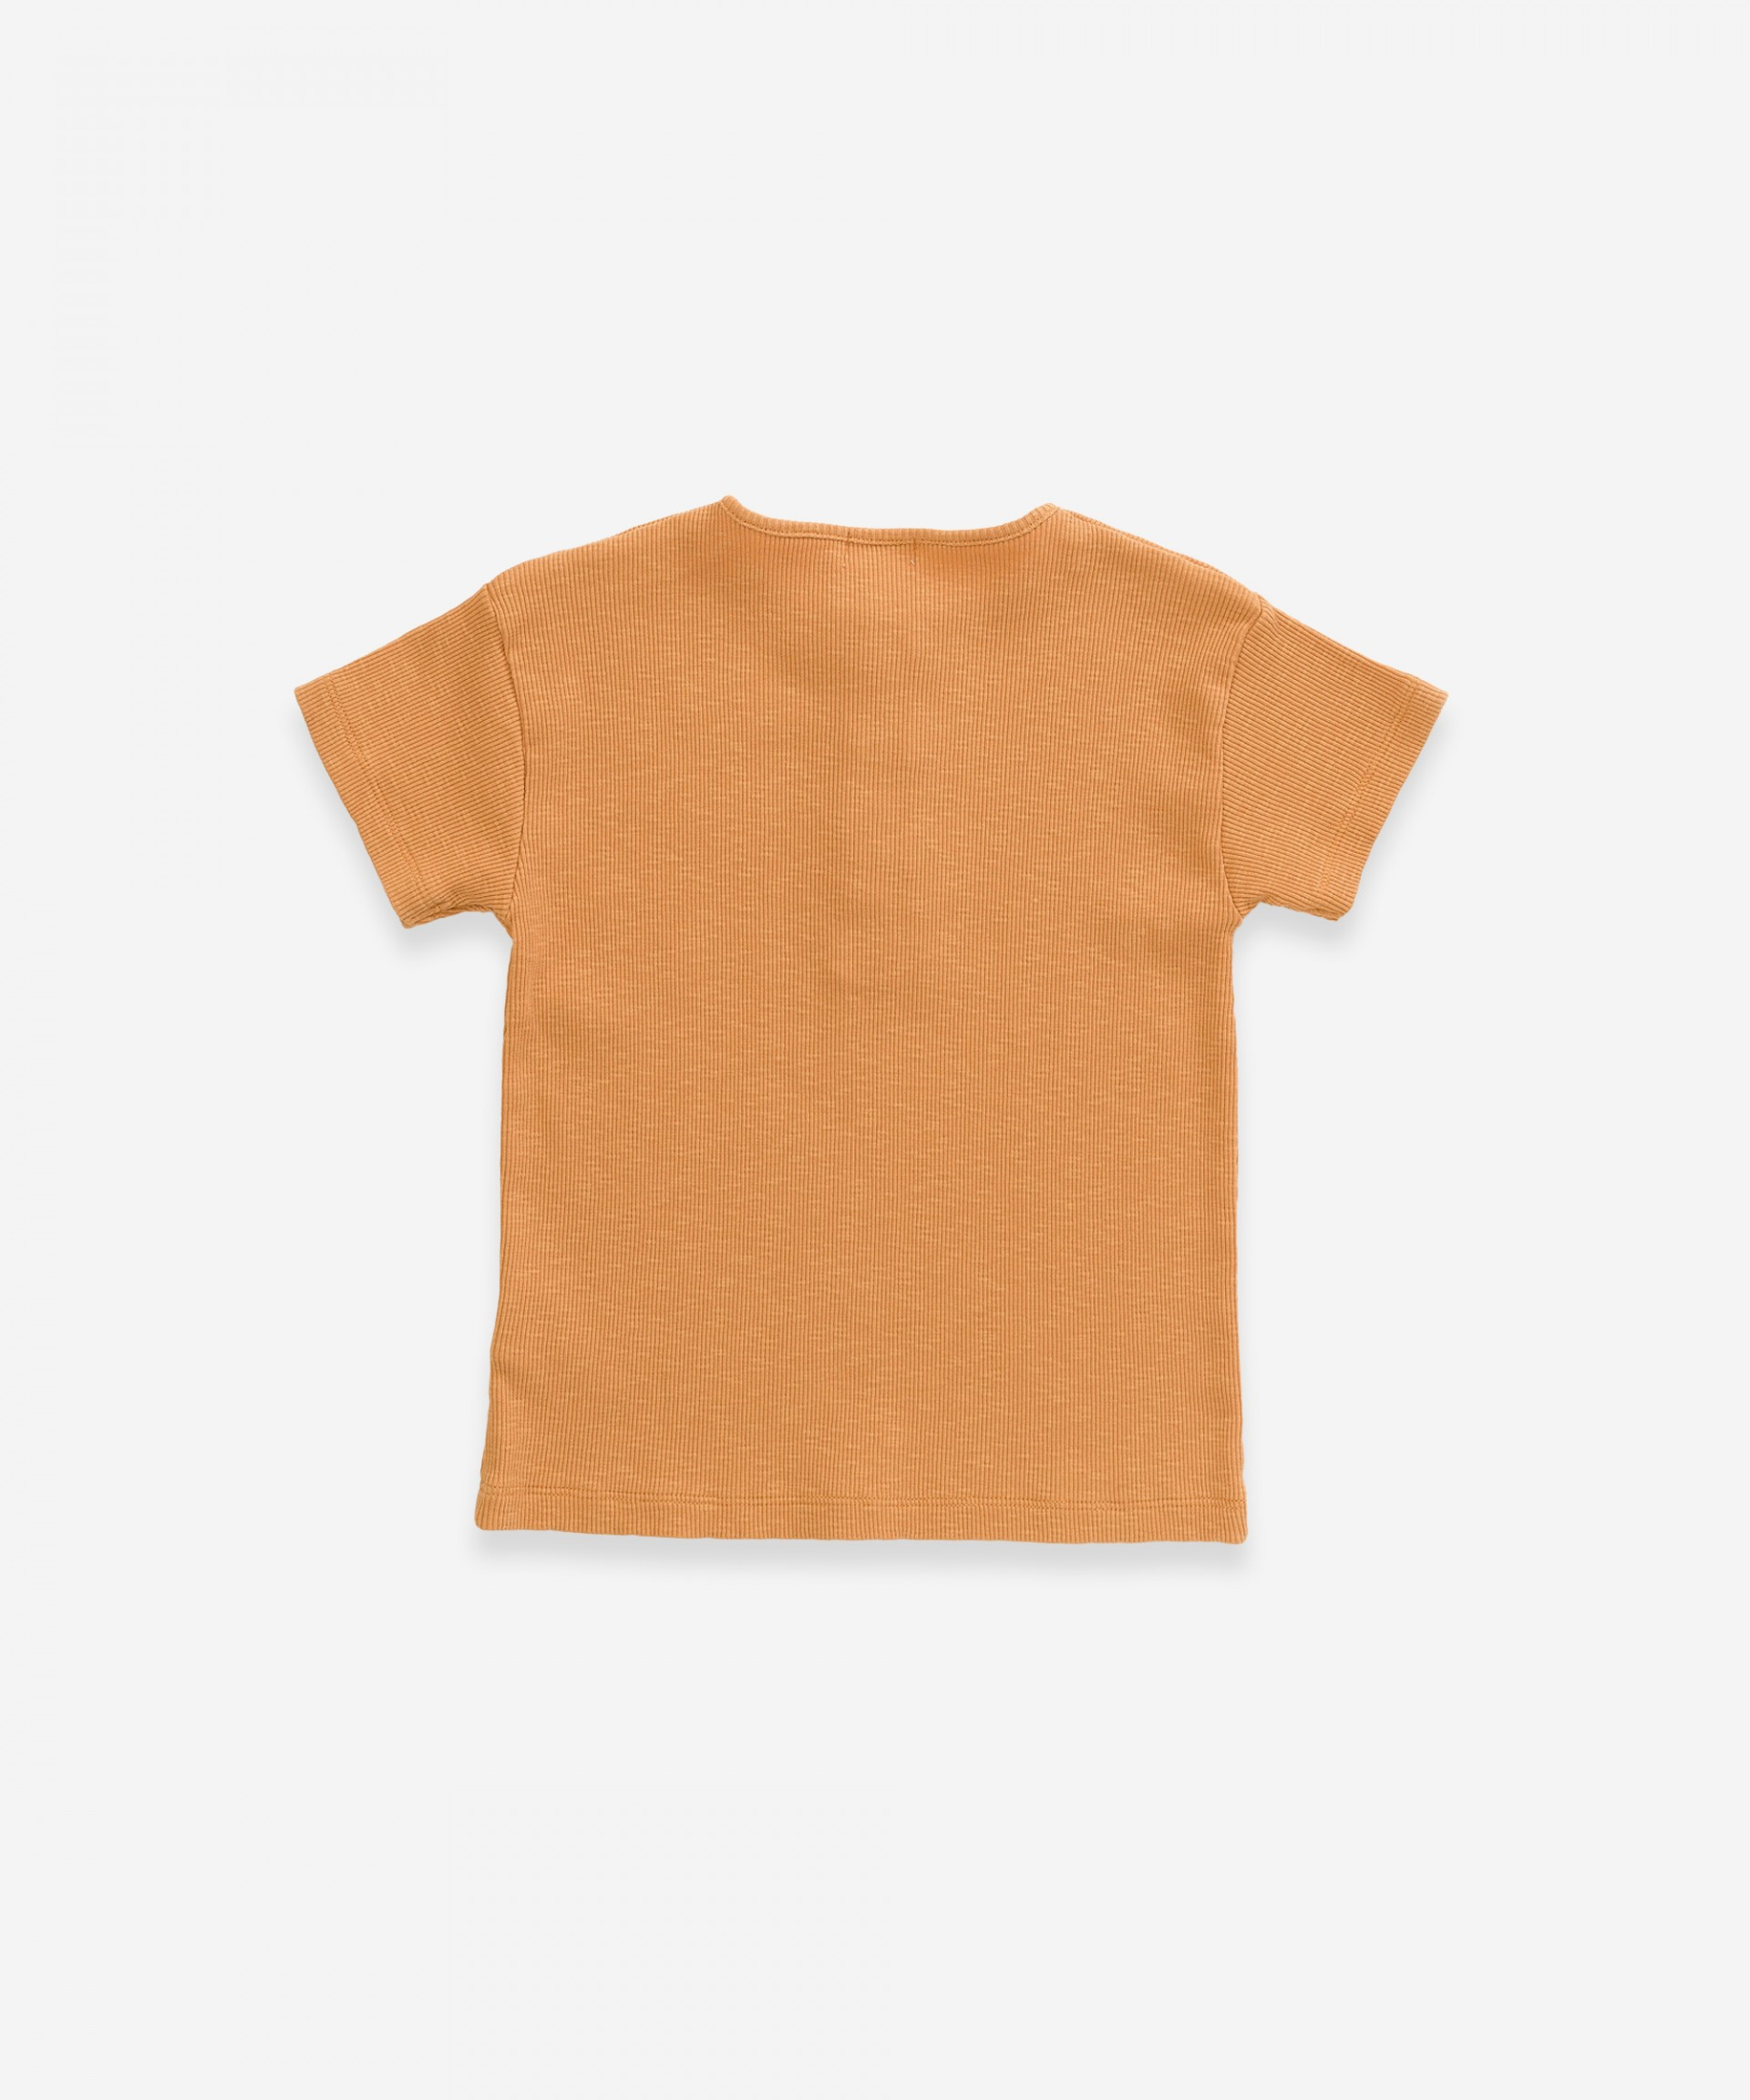 T-shirt in organic cotton with wooden buttons | Weaving